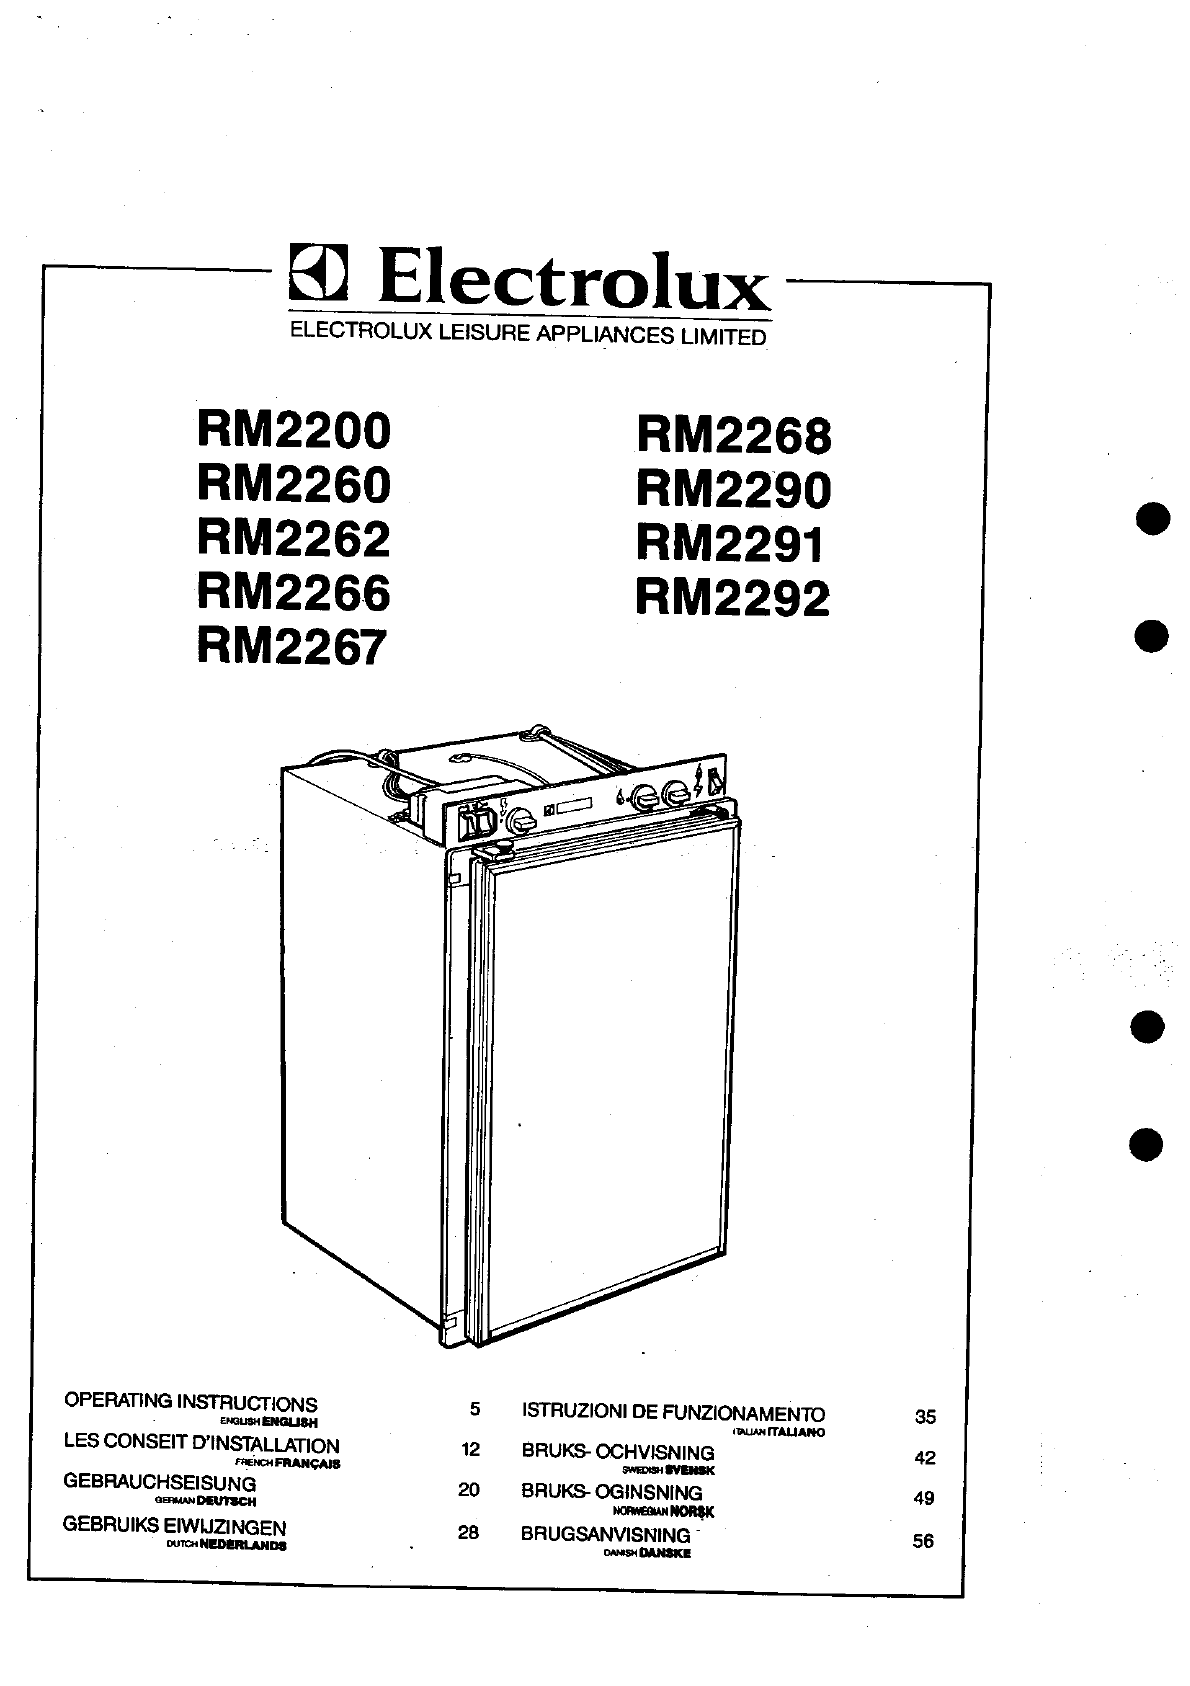 electrolux oven instructions manual